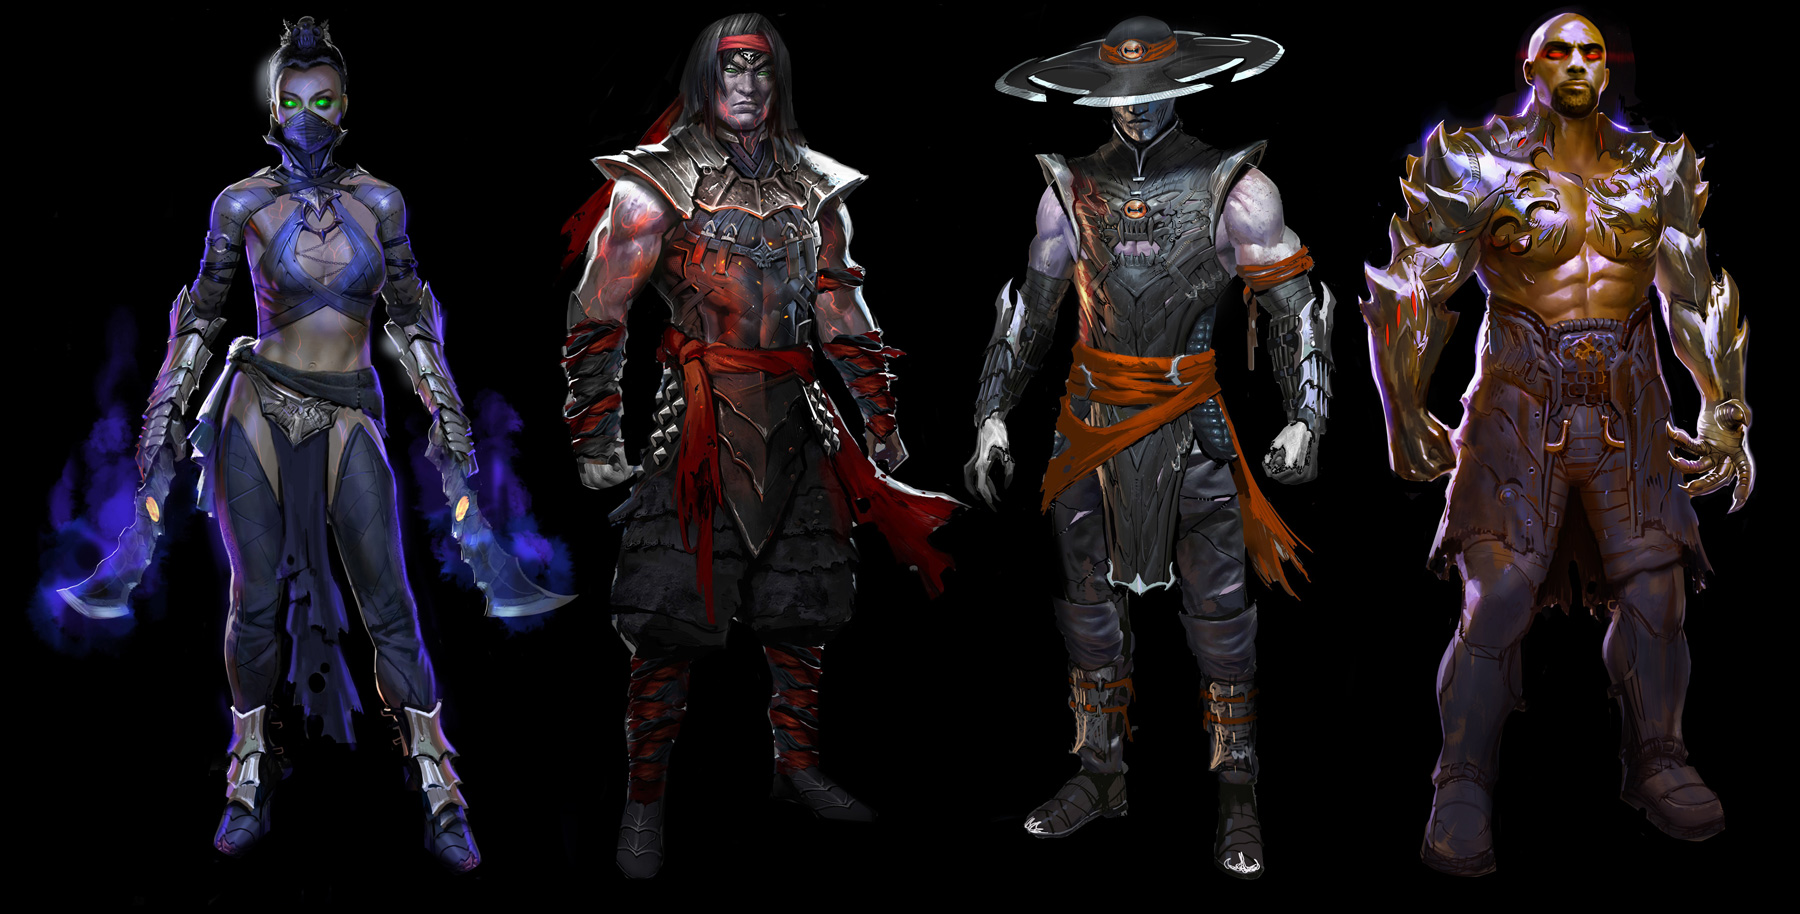 Exclusive 'Mortal Kombat X' Concept Art by Marco Nelor